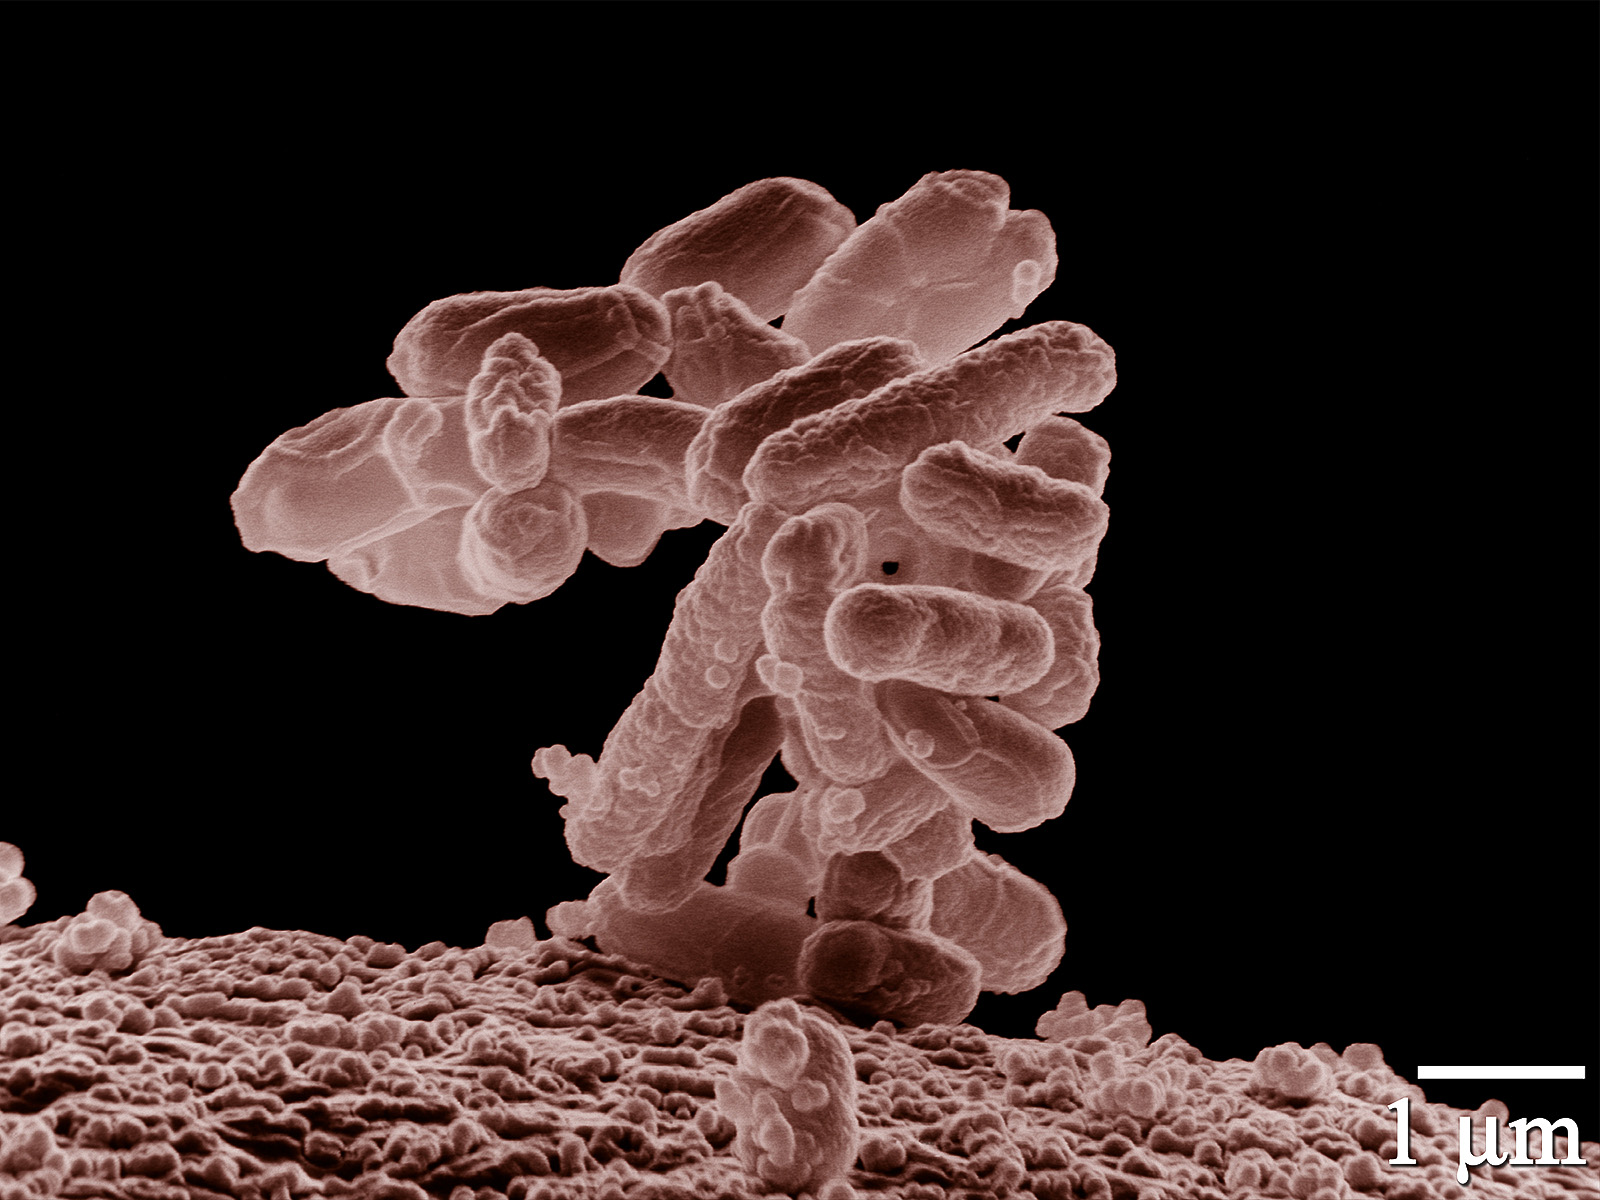 https://i1.wp.com/upload.wikimedia.org/wikipedia/commons/8/82/E_coli_at_10000x.jpg